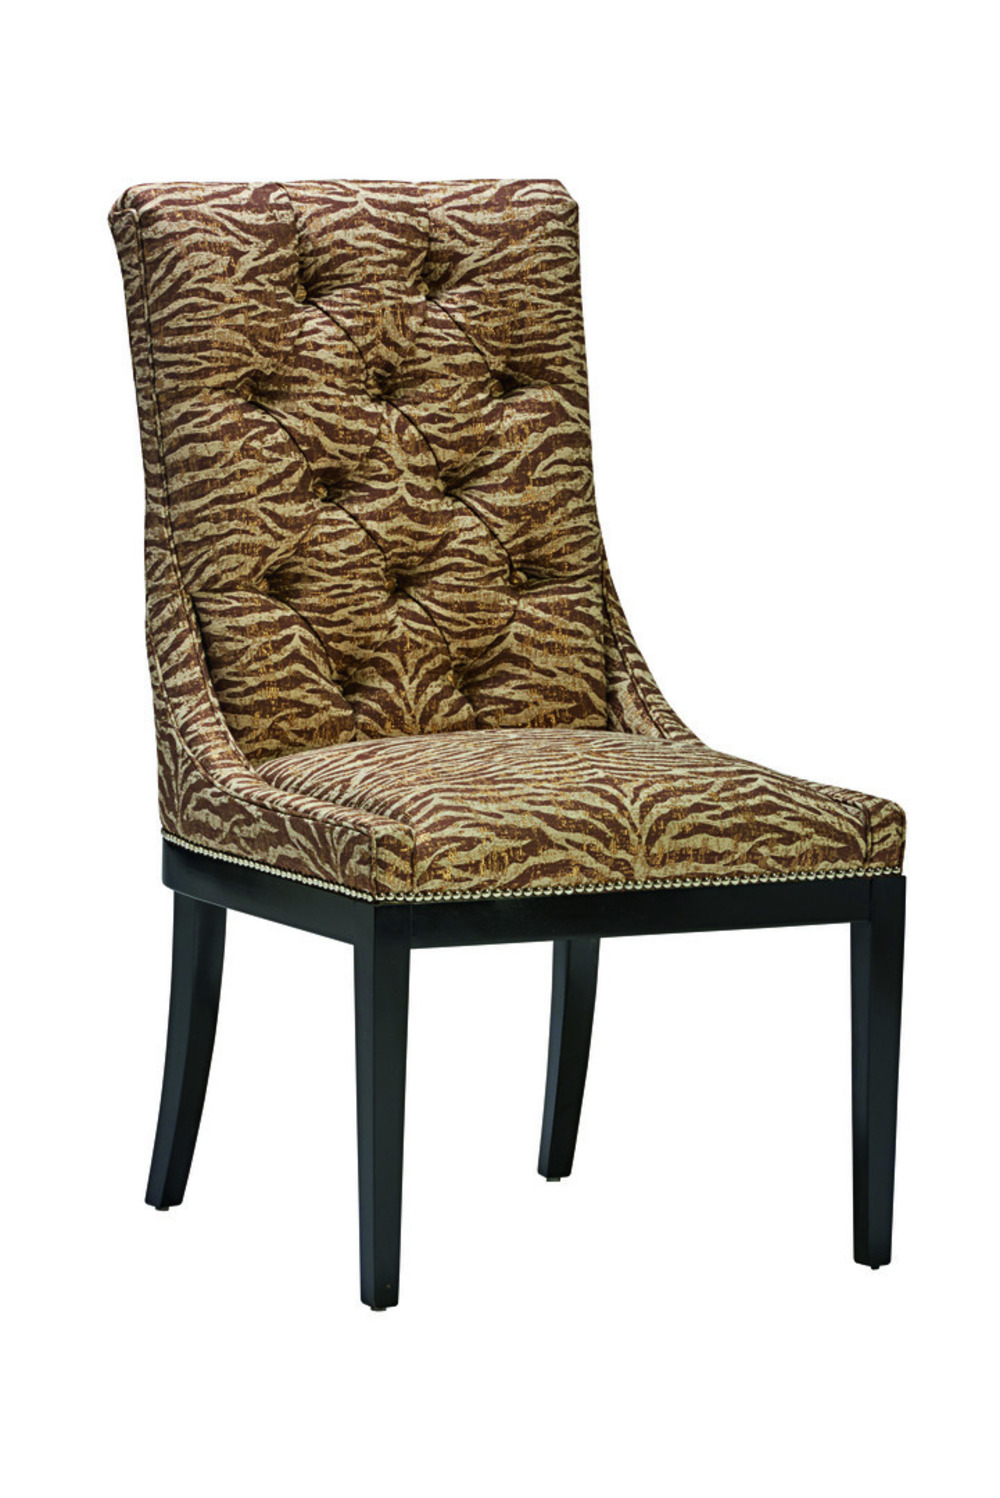 Marge Carson - Mulholland Side Chair